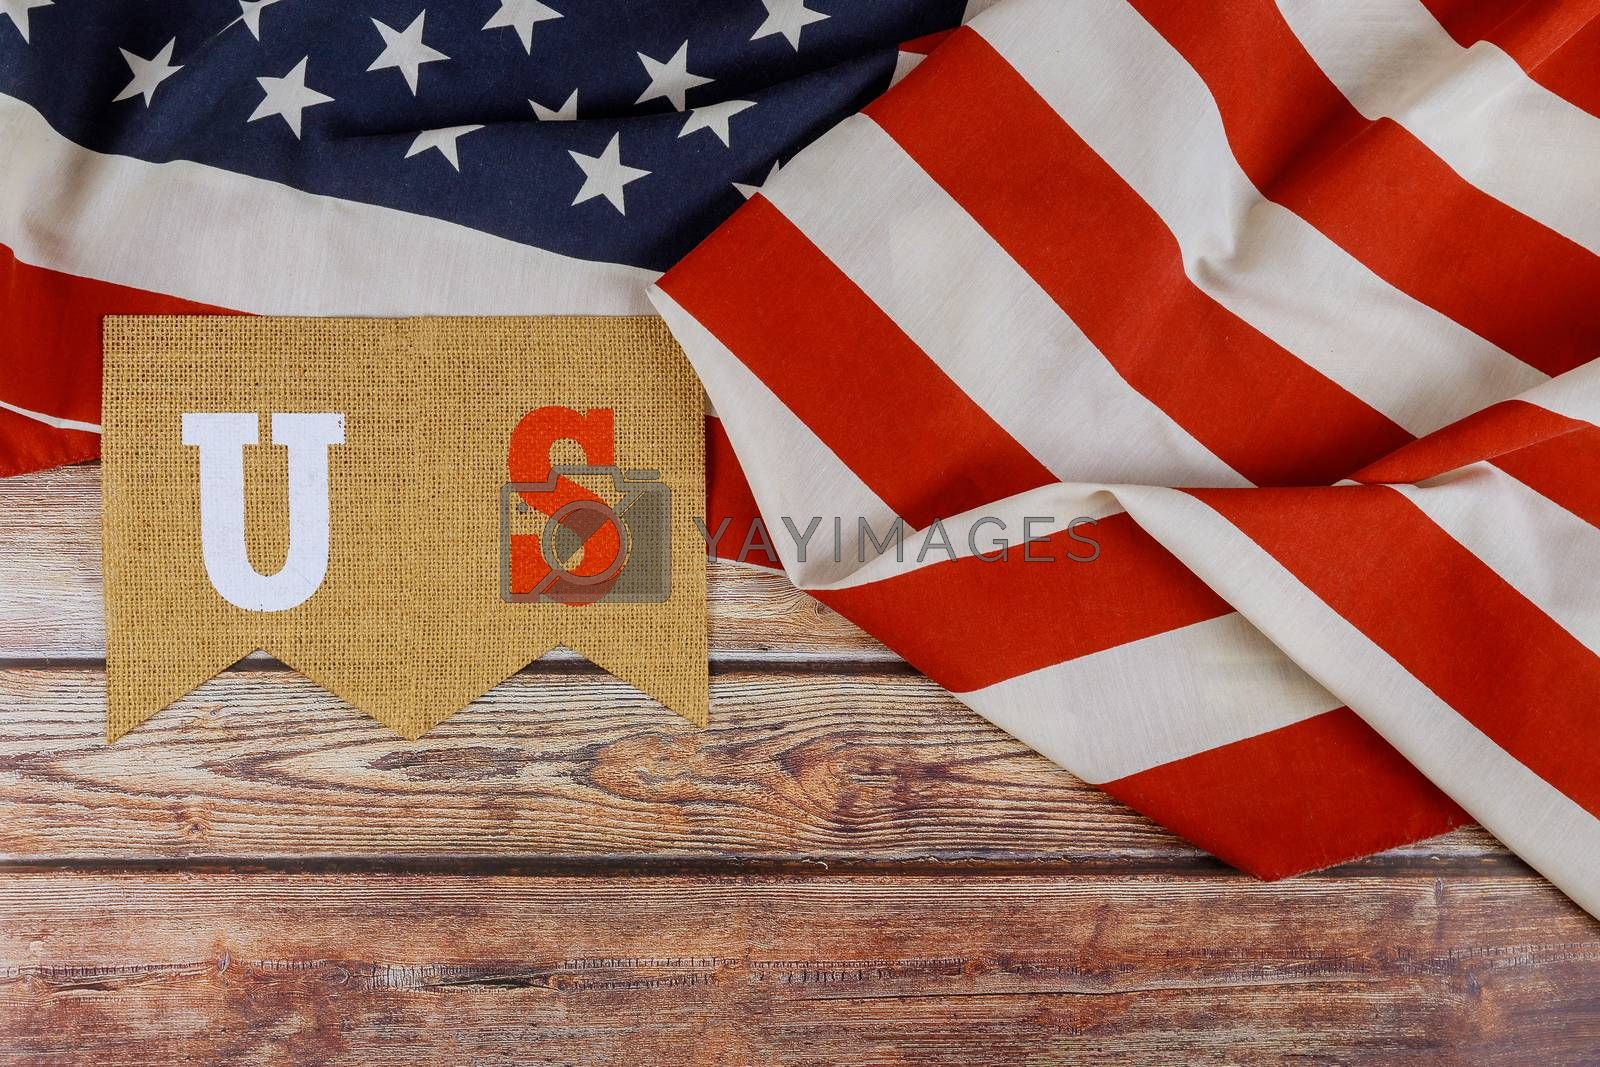 Royalty free image of Happy US. federal holiday of Labor Day Memorial Day of the American flag by ungvar